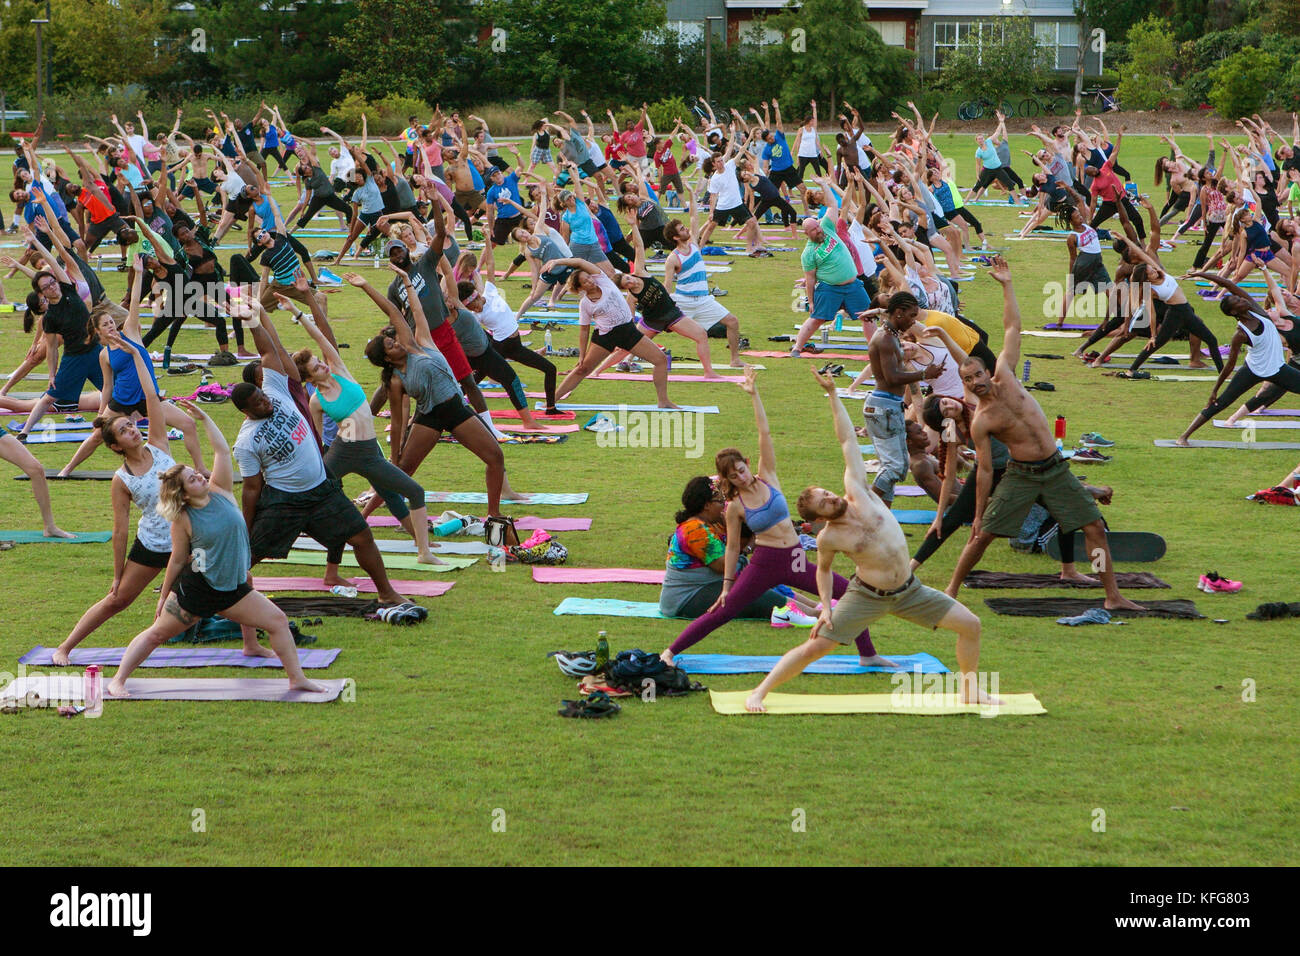 Atlanta, GA, USA - July 2, 2017:  Dozens of people stretch doing a yoga pose as they take part in a free group yoga - Stock Image